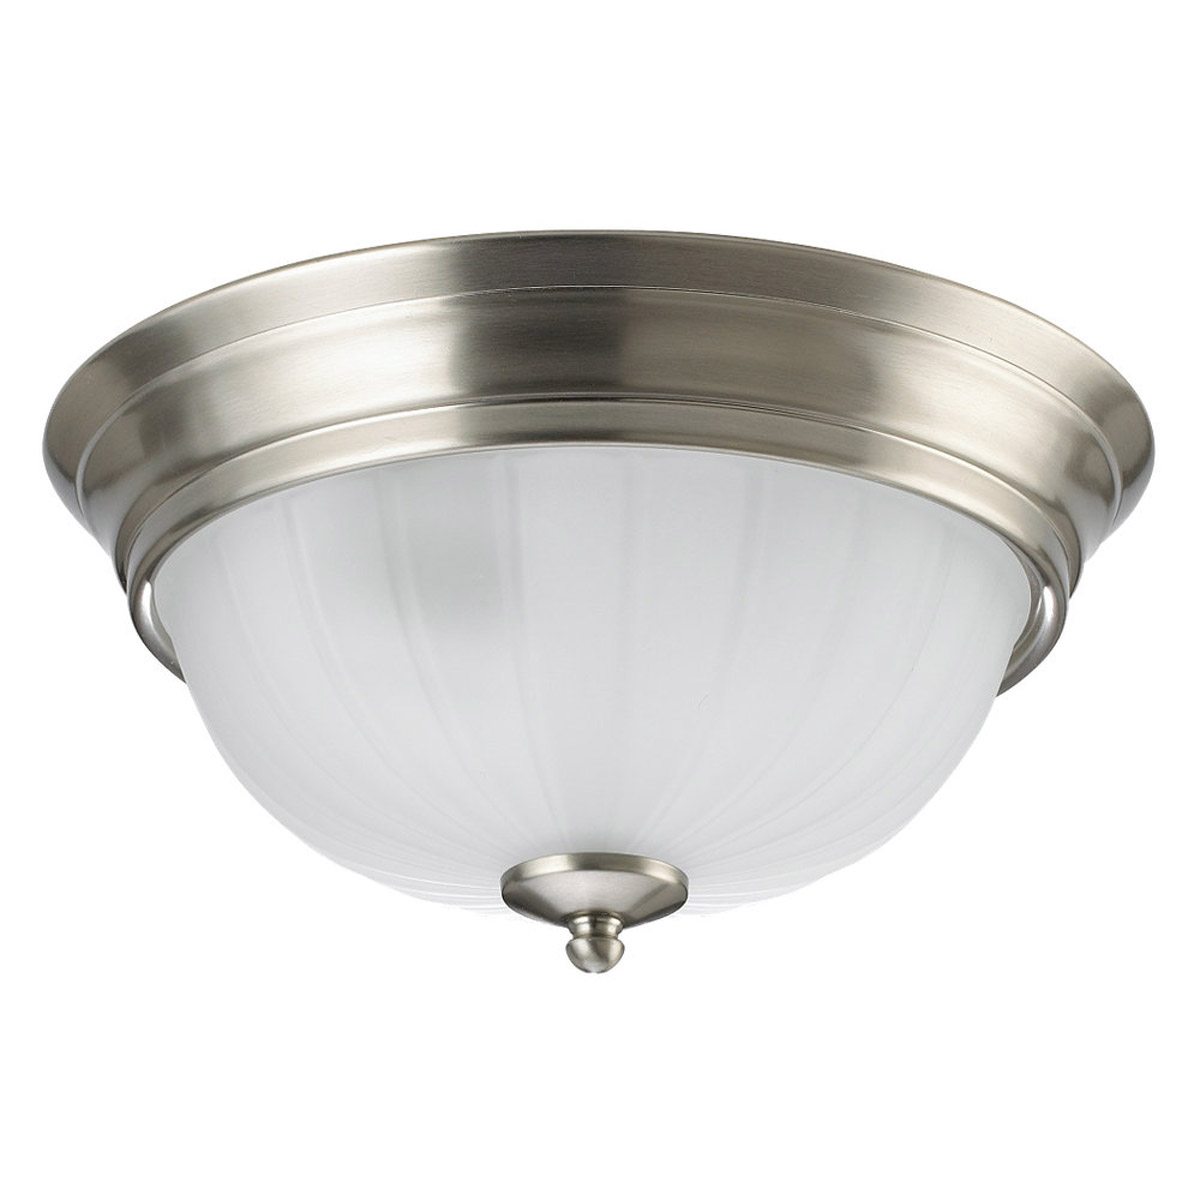 Sea Gull Lighting Linwood 2 Light Flush Mount in Brushed Nickel 7505-962